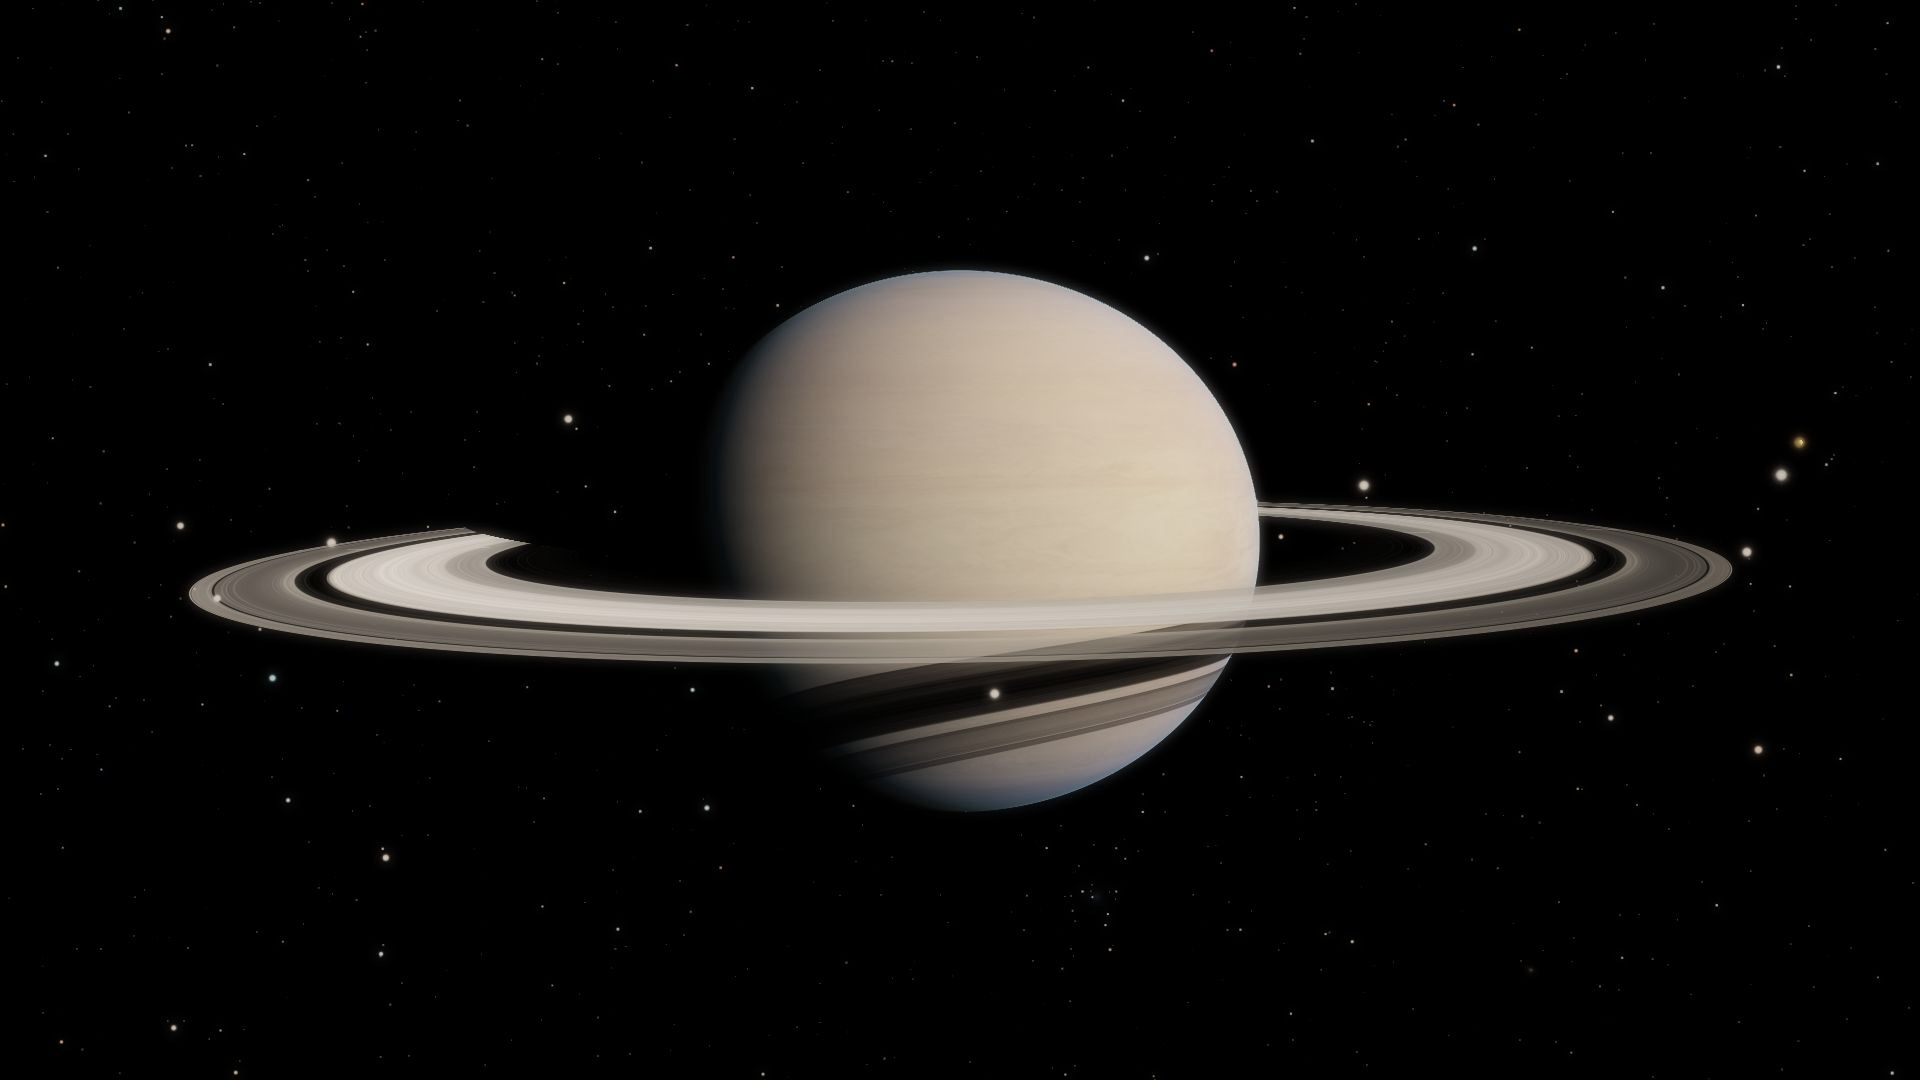 planet saturn pictures - HD 1920×1080